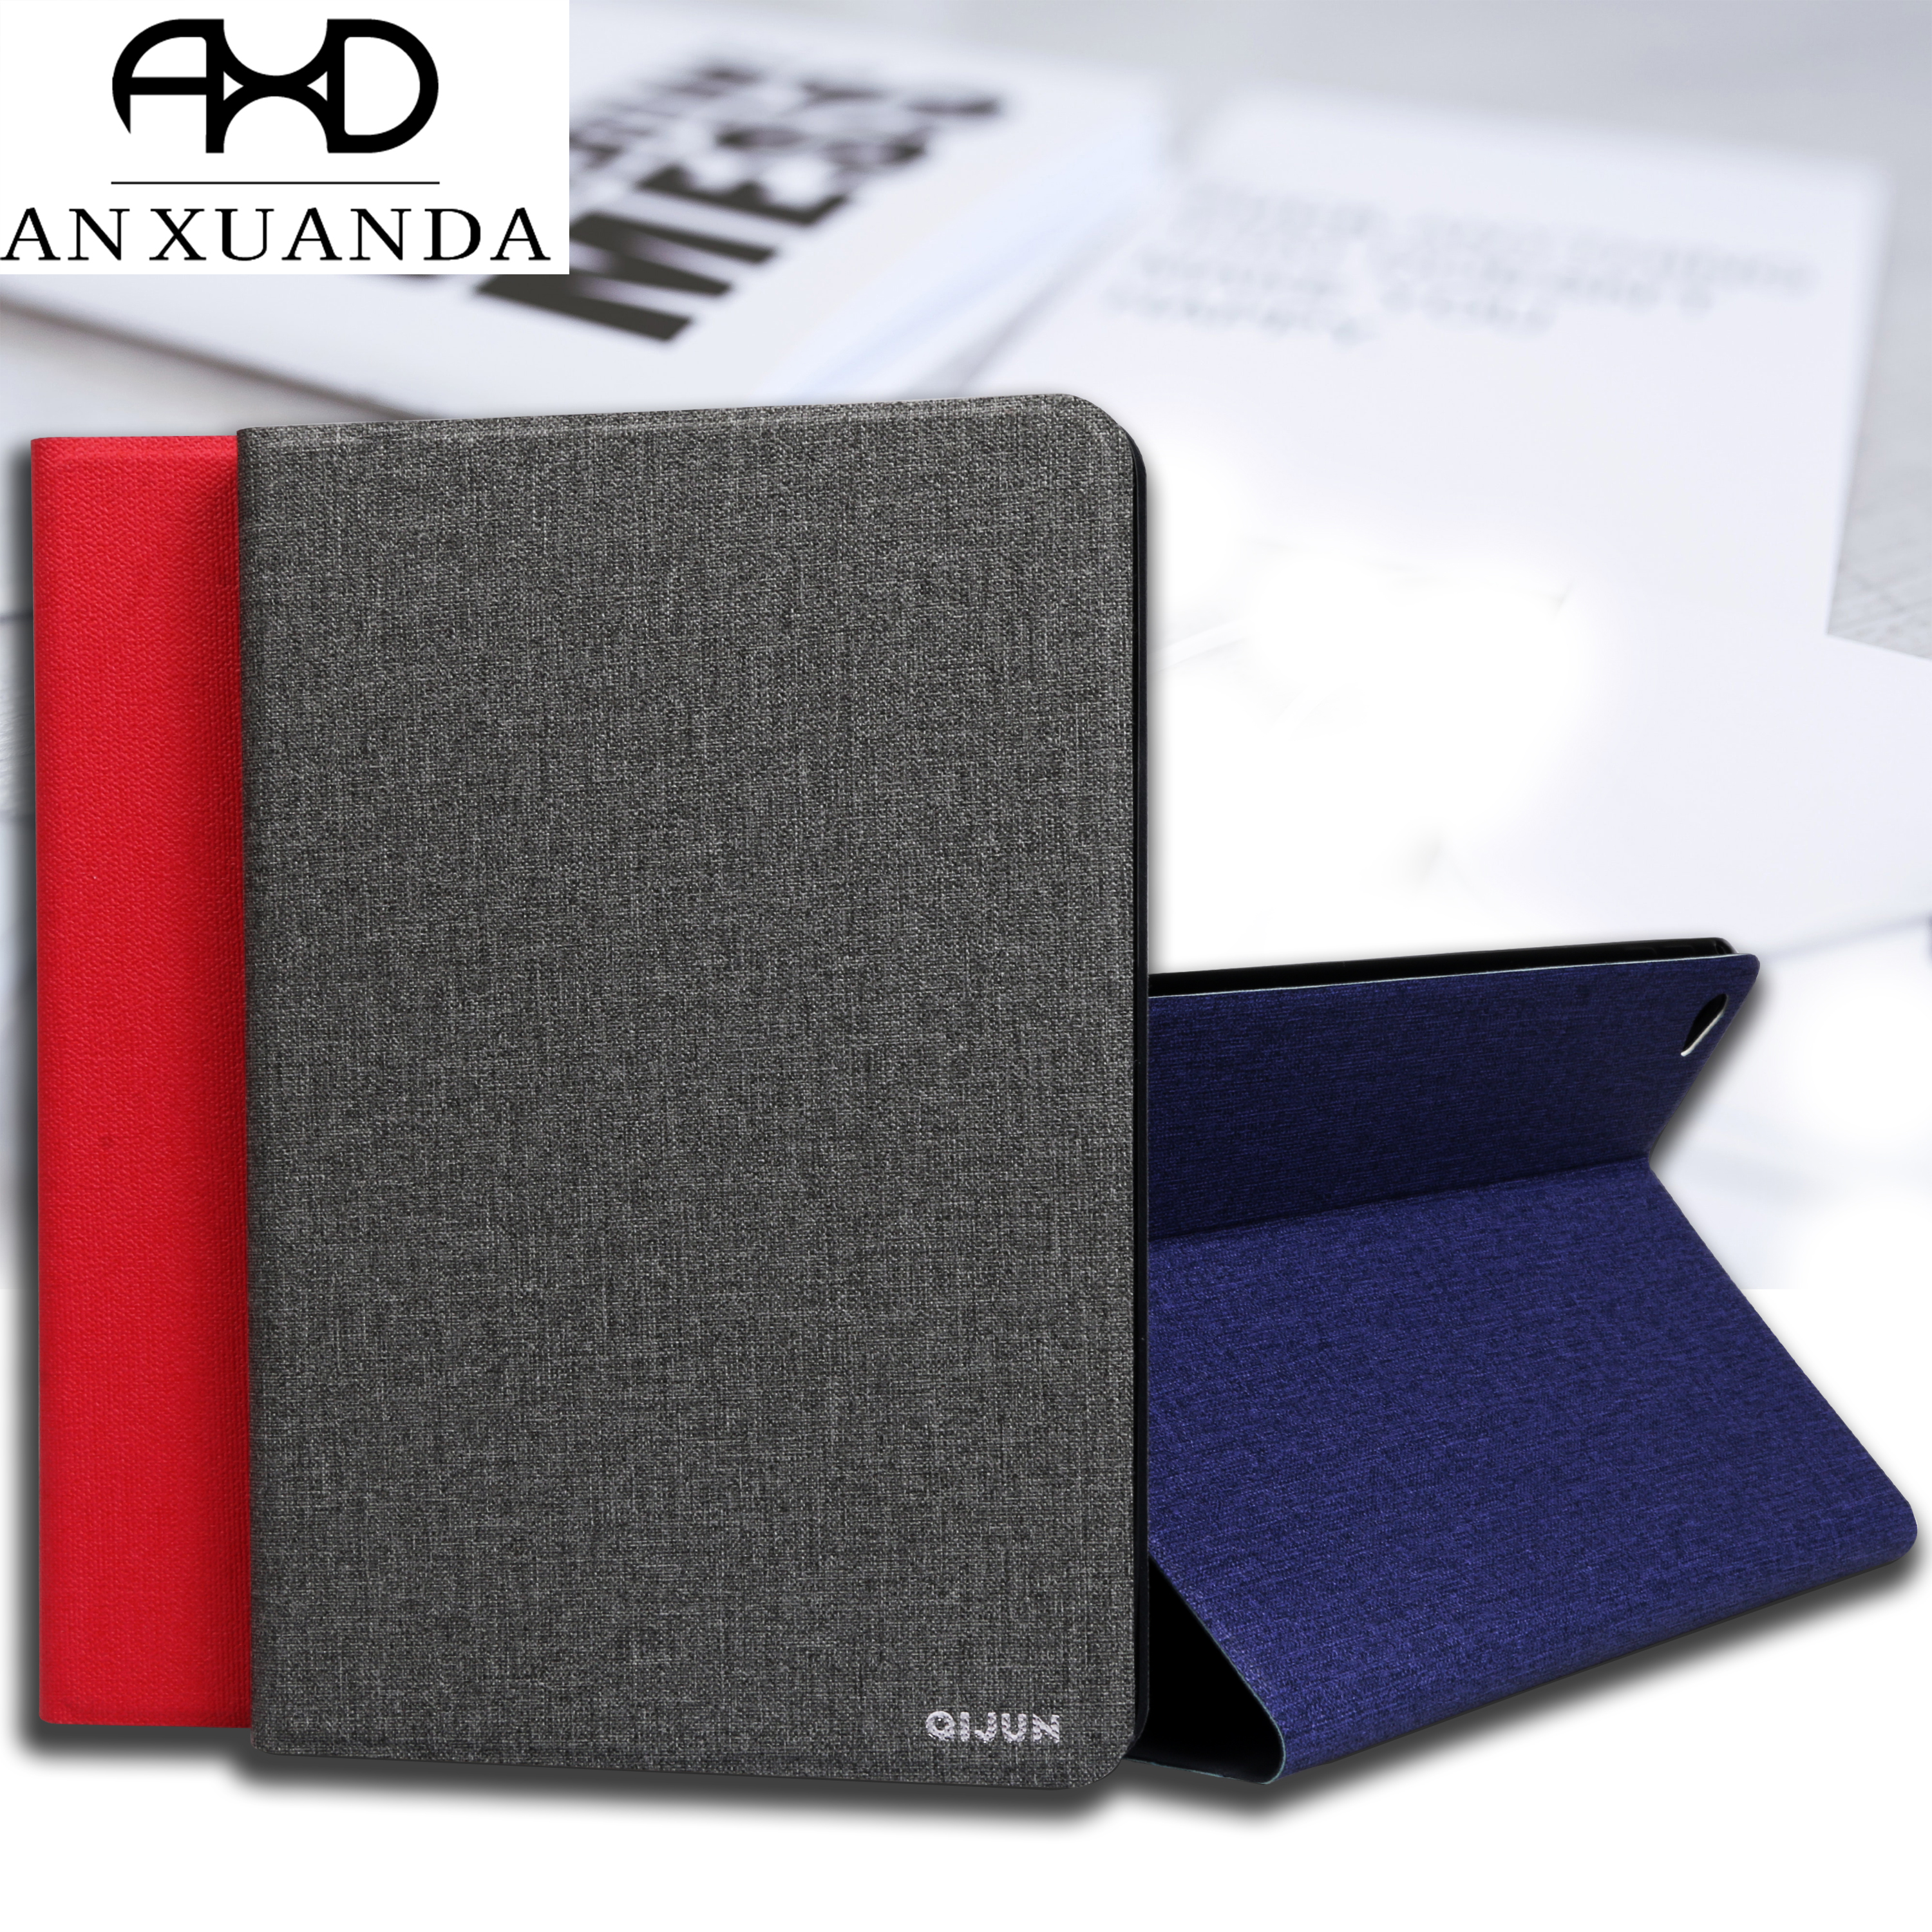 For Samsung Galaxy Tab A 10.5 Inch (2018) T590 QIJUN Case For Galaxy T590 T595 T597 Case Slim Flip Cover Soft Protective Shell